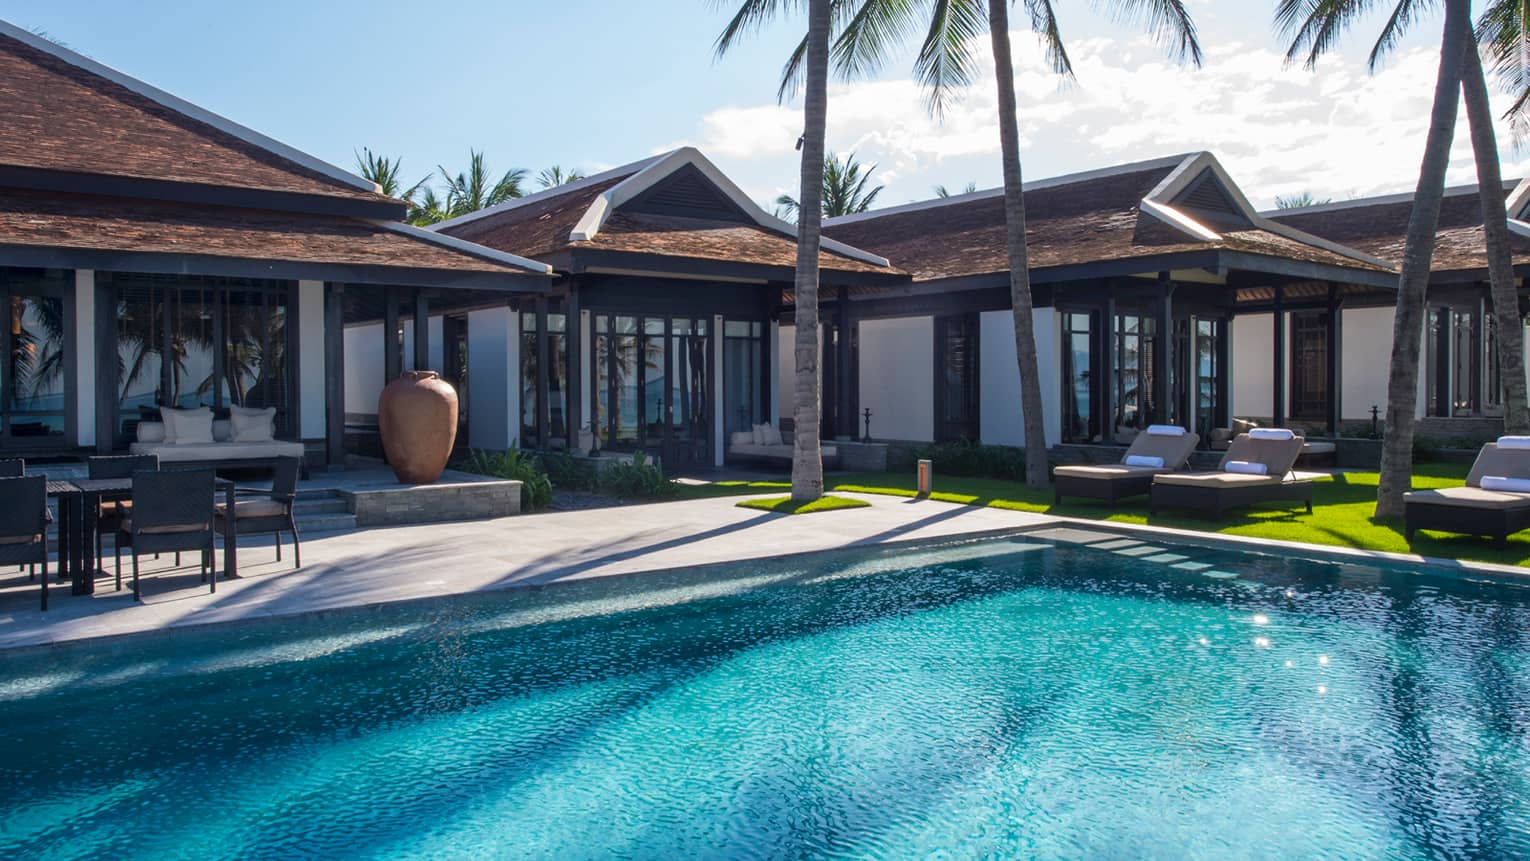 Five bedroom pool villa exterior. tall palm trees around outdoor swimming pool